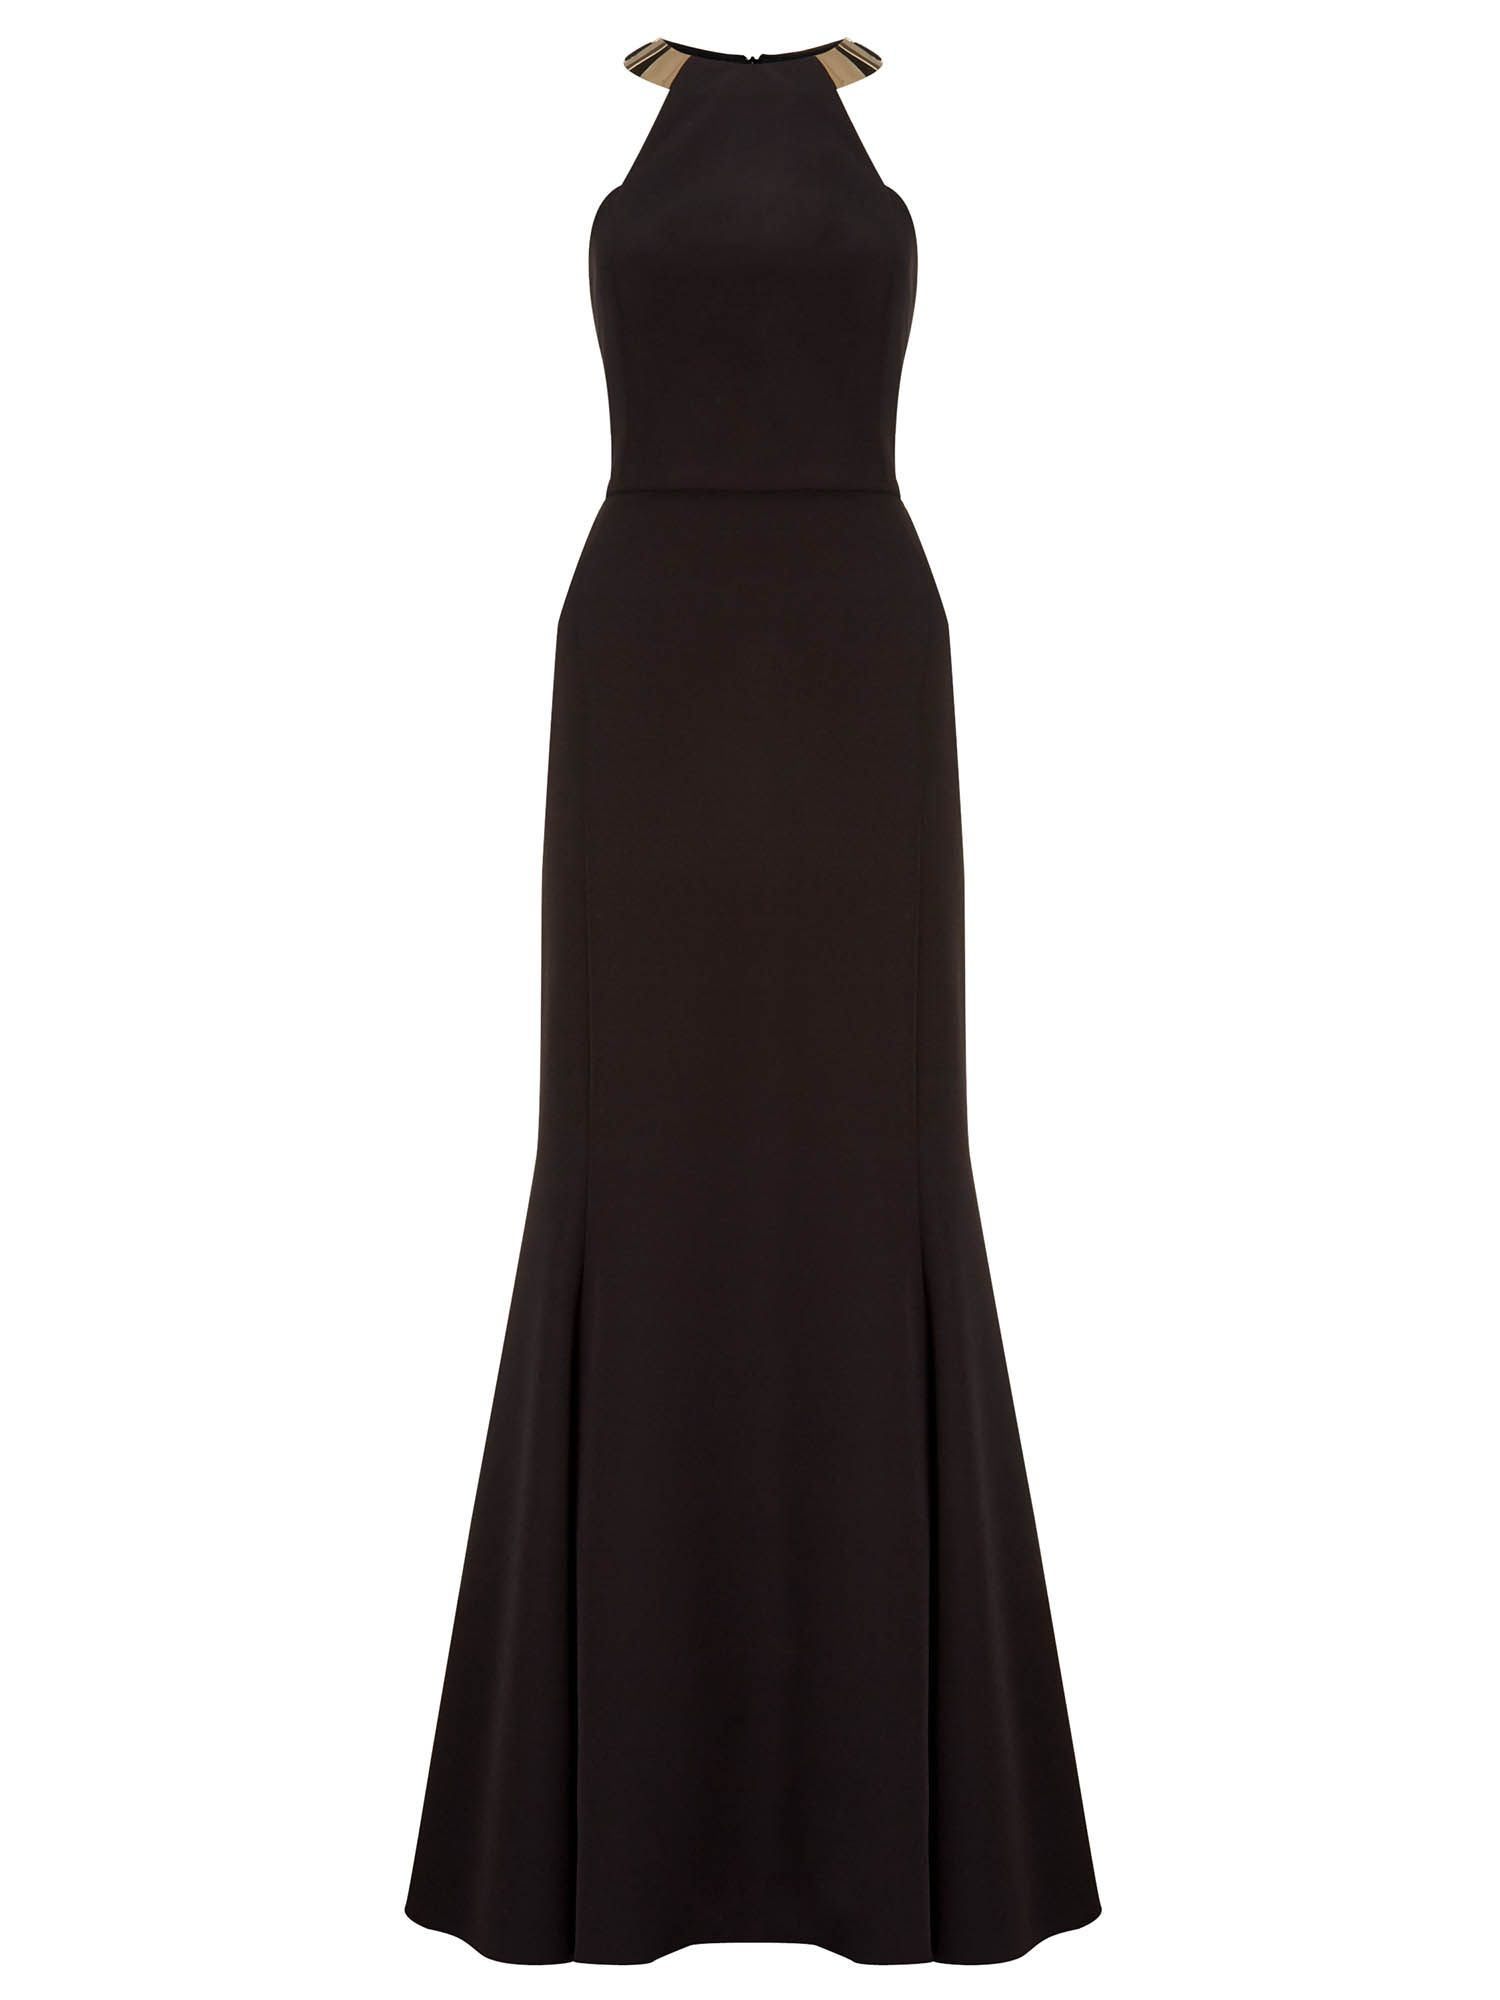 Ariella bianca gold neck trim long dress, Black